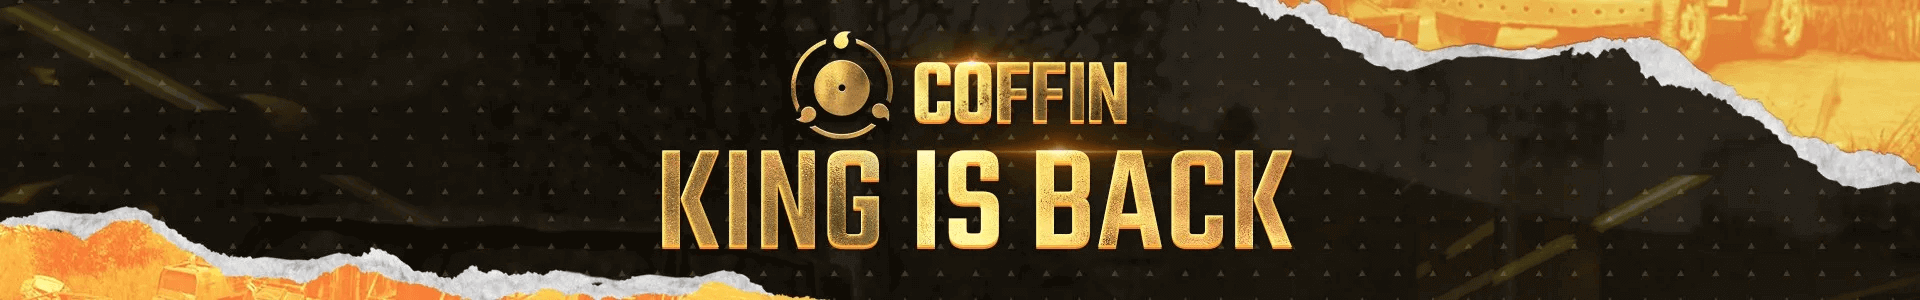 Coffin King is back banner